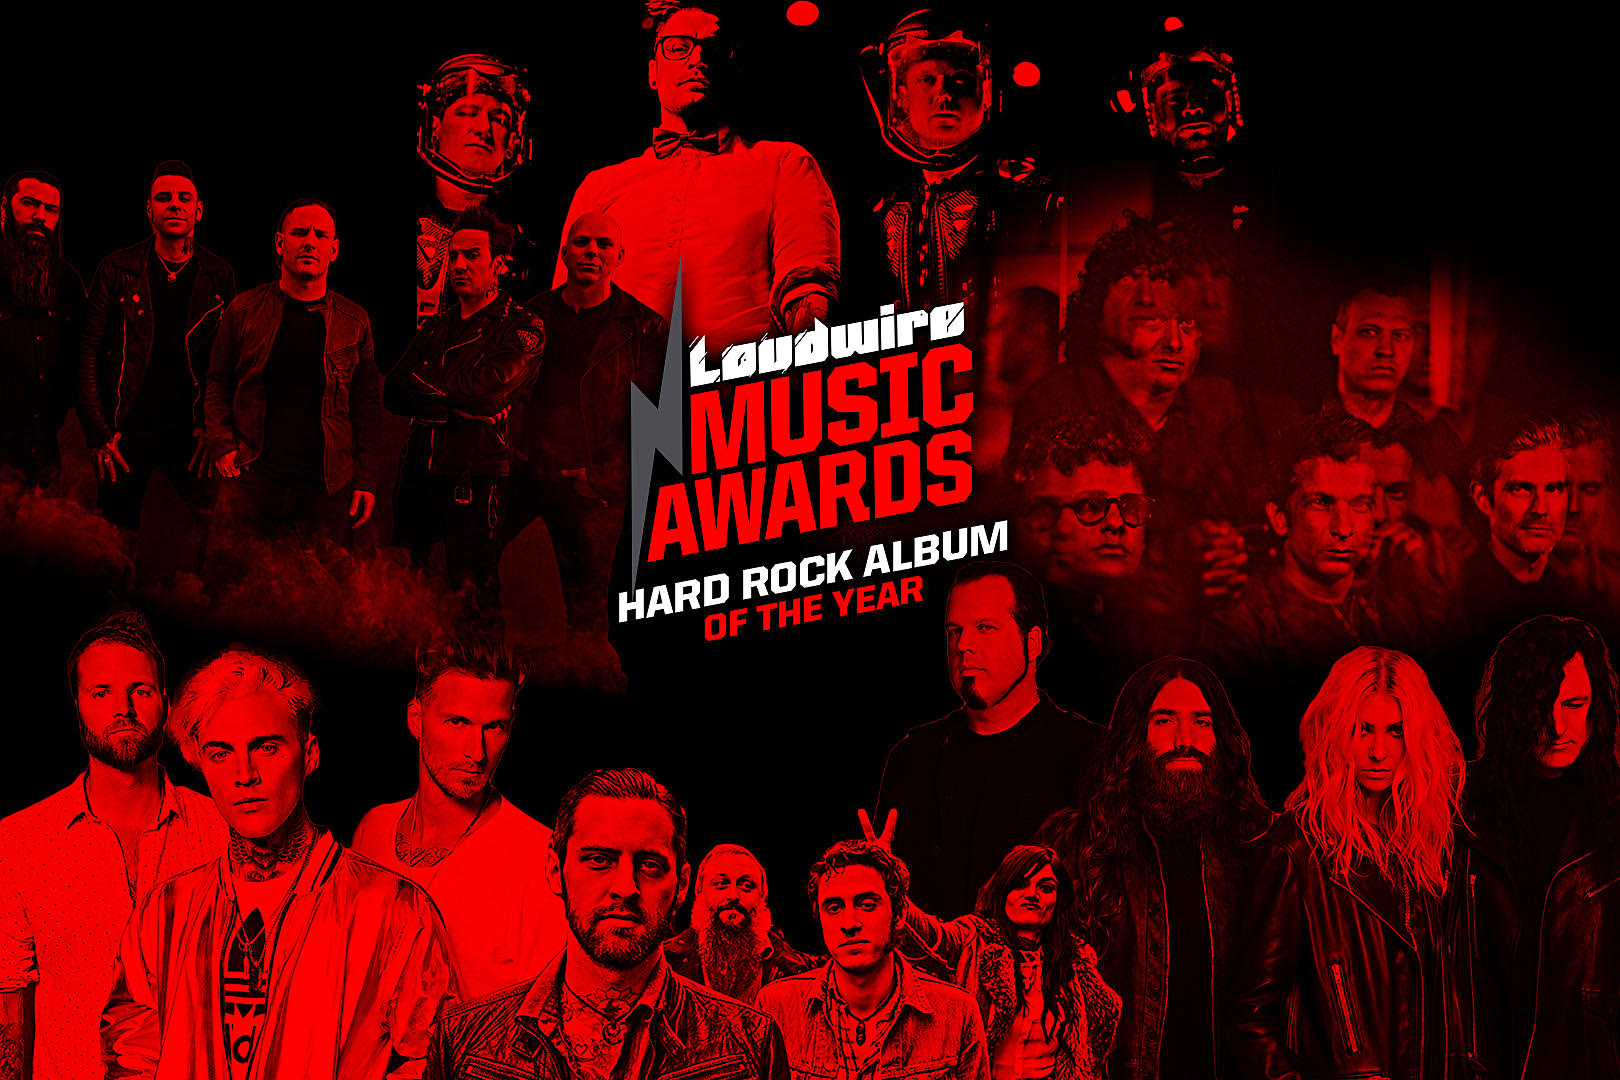 Vote for the Hard Rock Album of the Year – 2017 Loudwire Music Awards